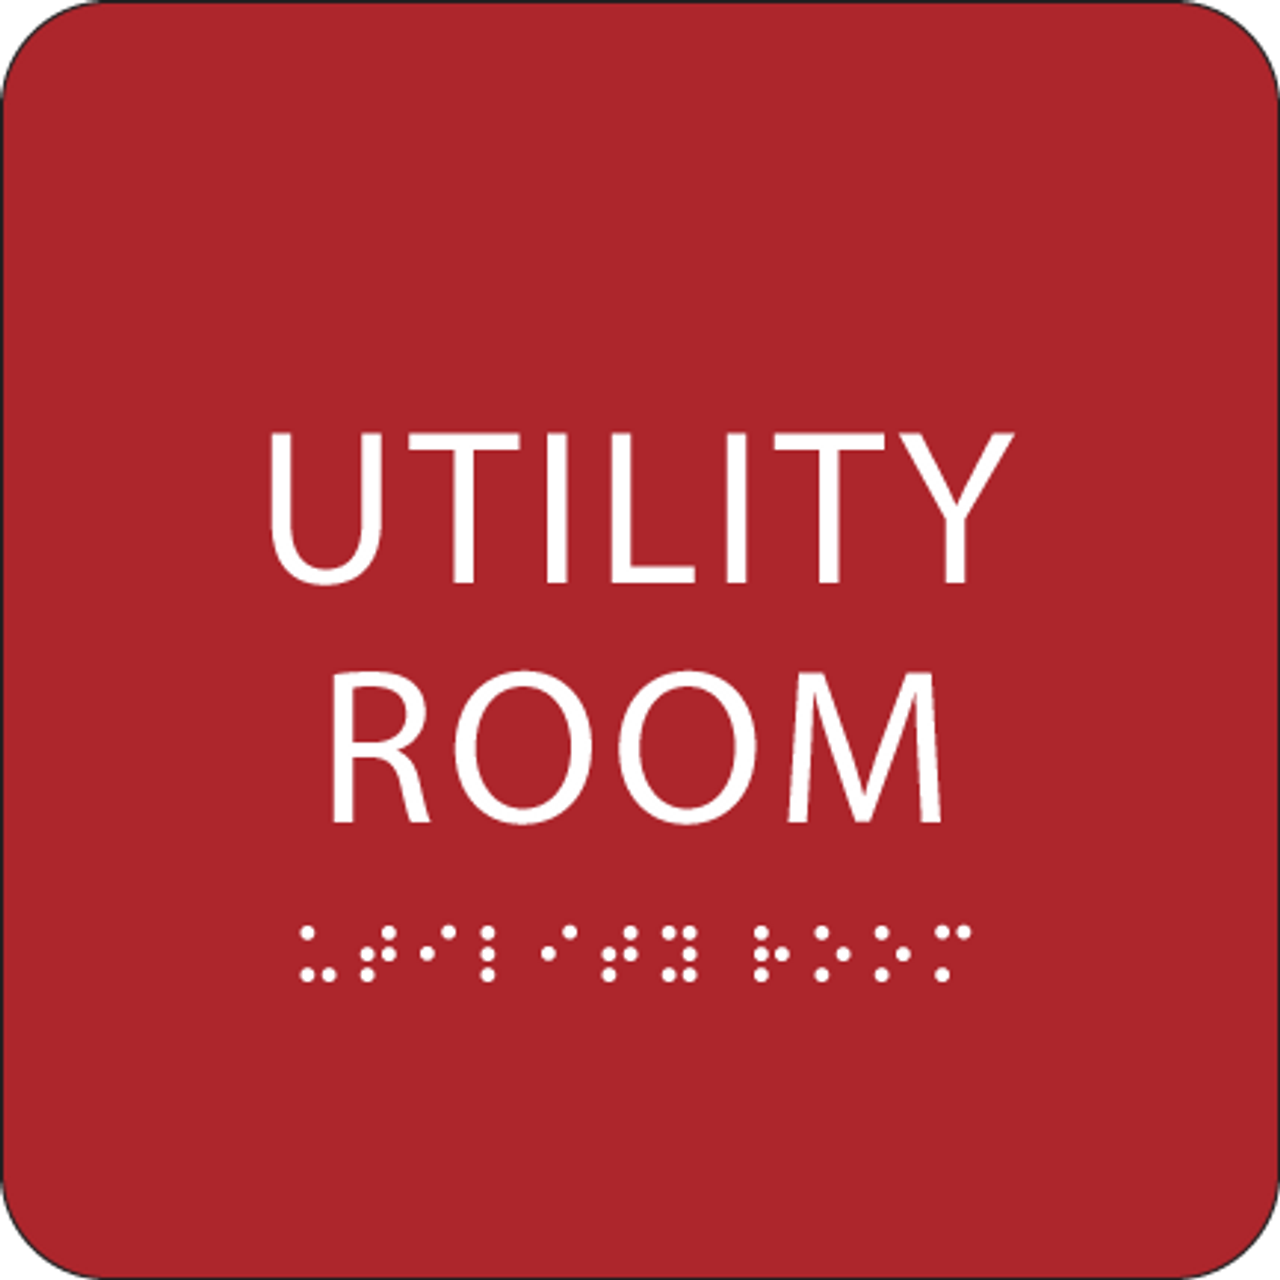 Red Utility Room ADA Sign